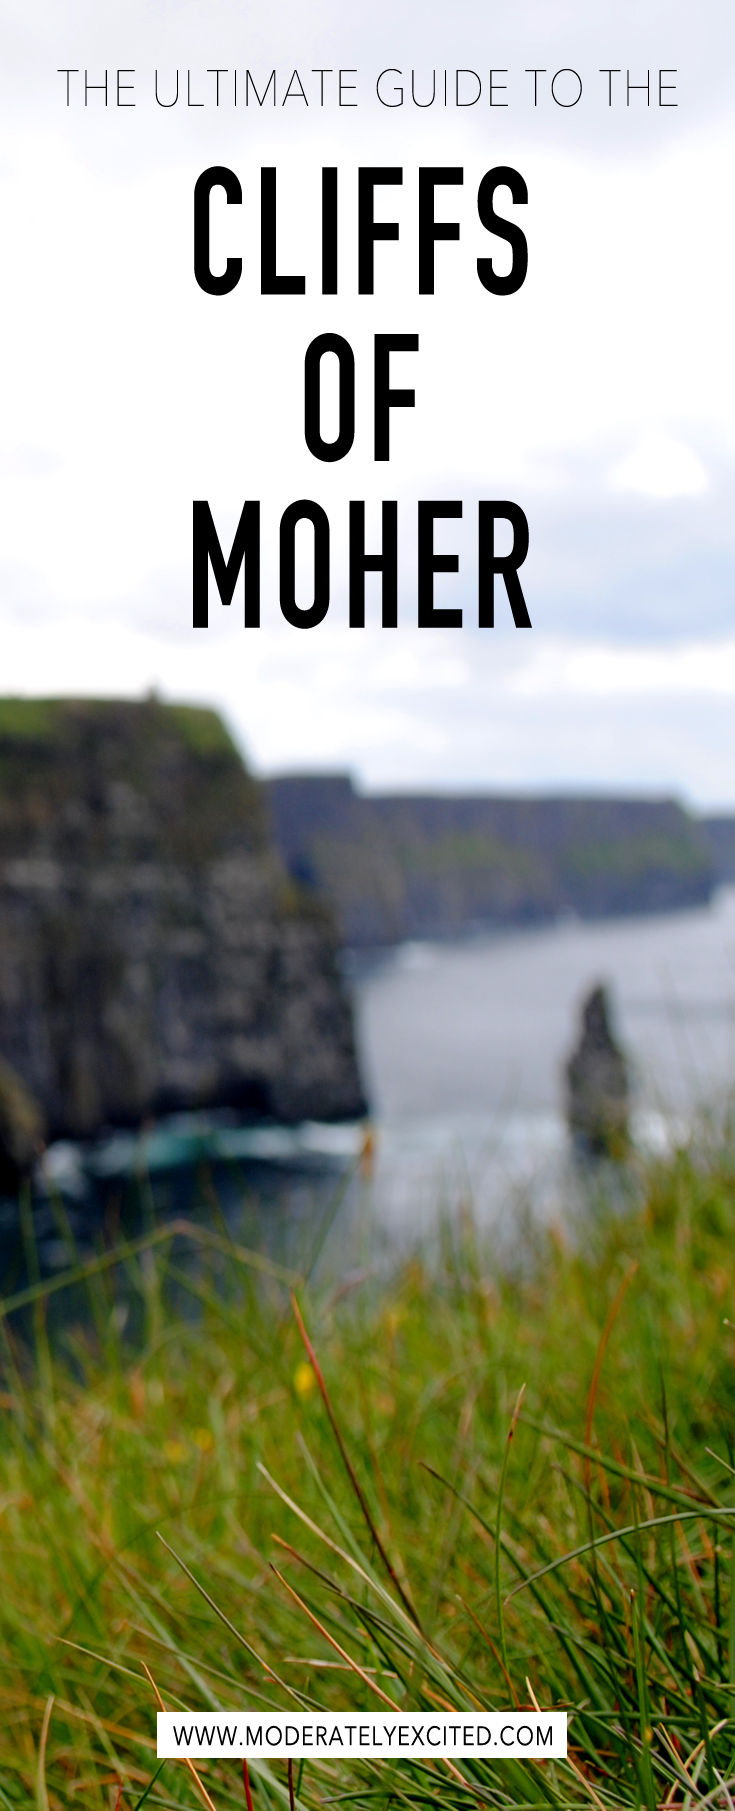 Your ultimate guide to seeing the Cliffs of Moher in Ireland